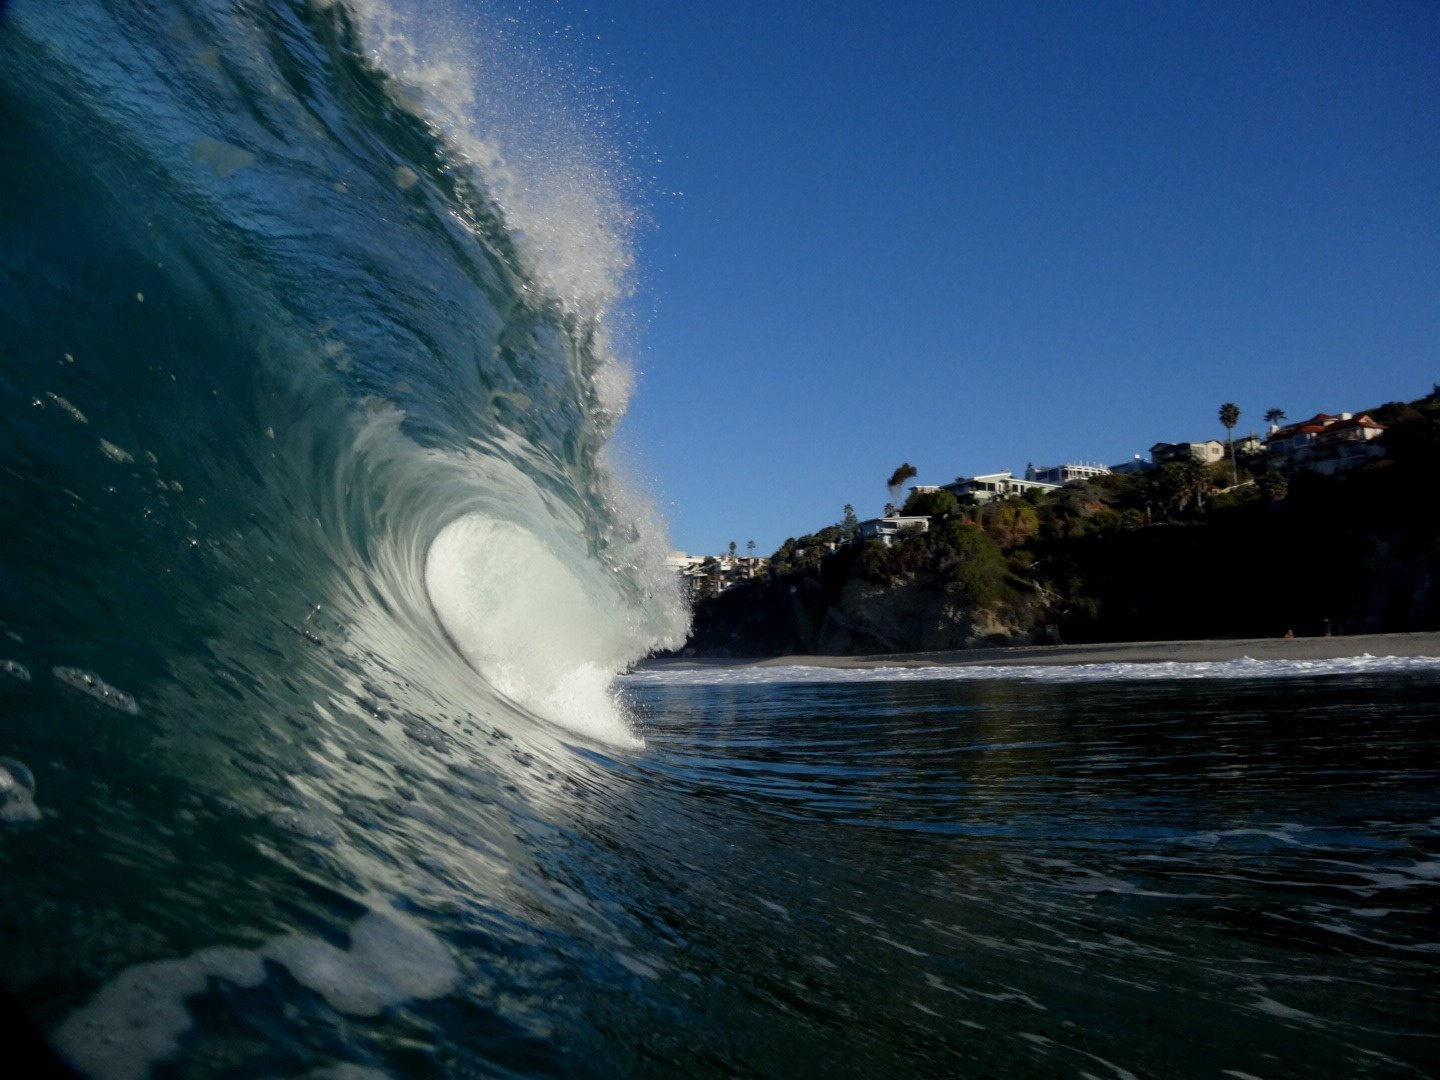 Mike Townsend's photo of Salt Creek